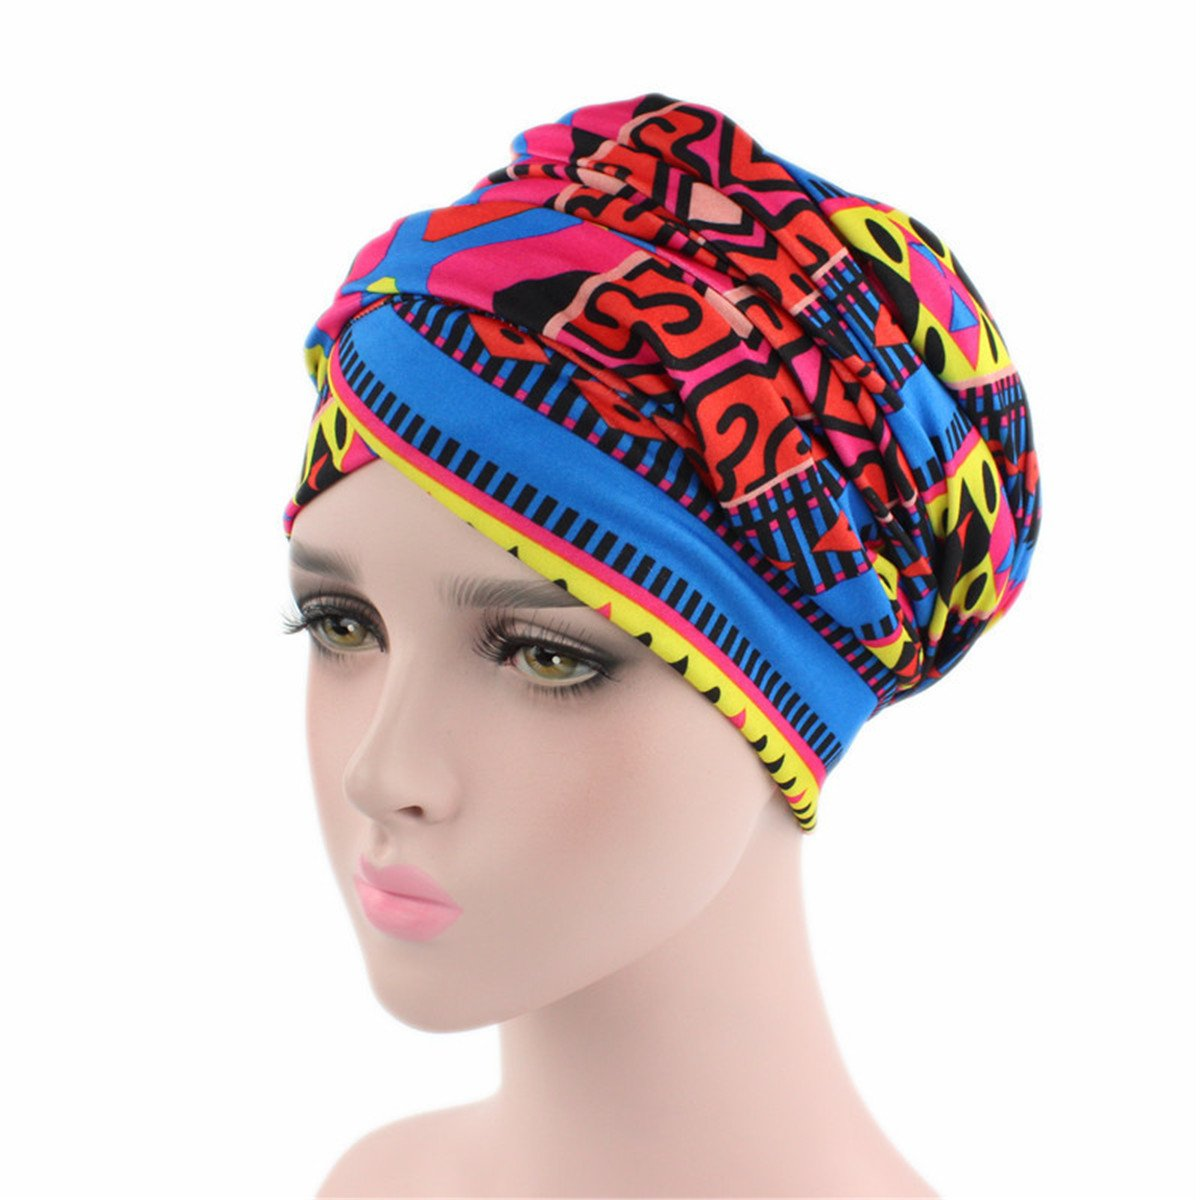 Qhome African Design Headscarf Long Head Scarf Jewish Headcover Turban Shawl Warp Hair African Headwrap Bohemian Headwrap Chem at Amazon Womens Clothing ...